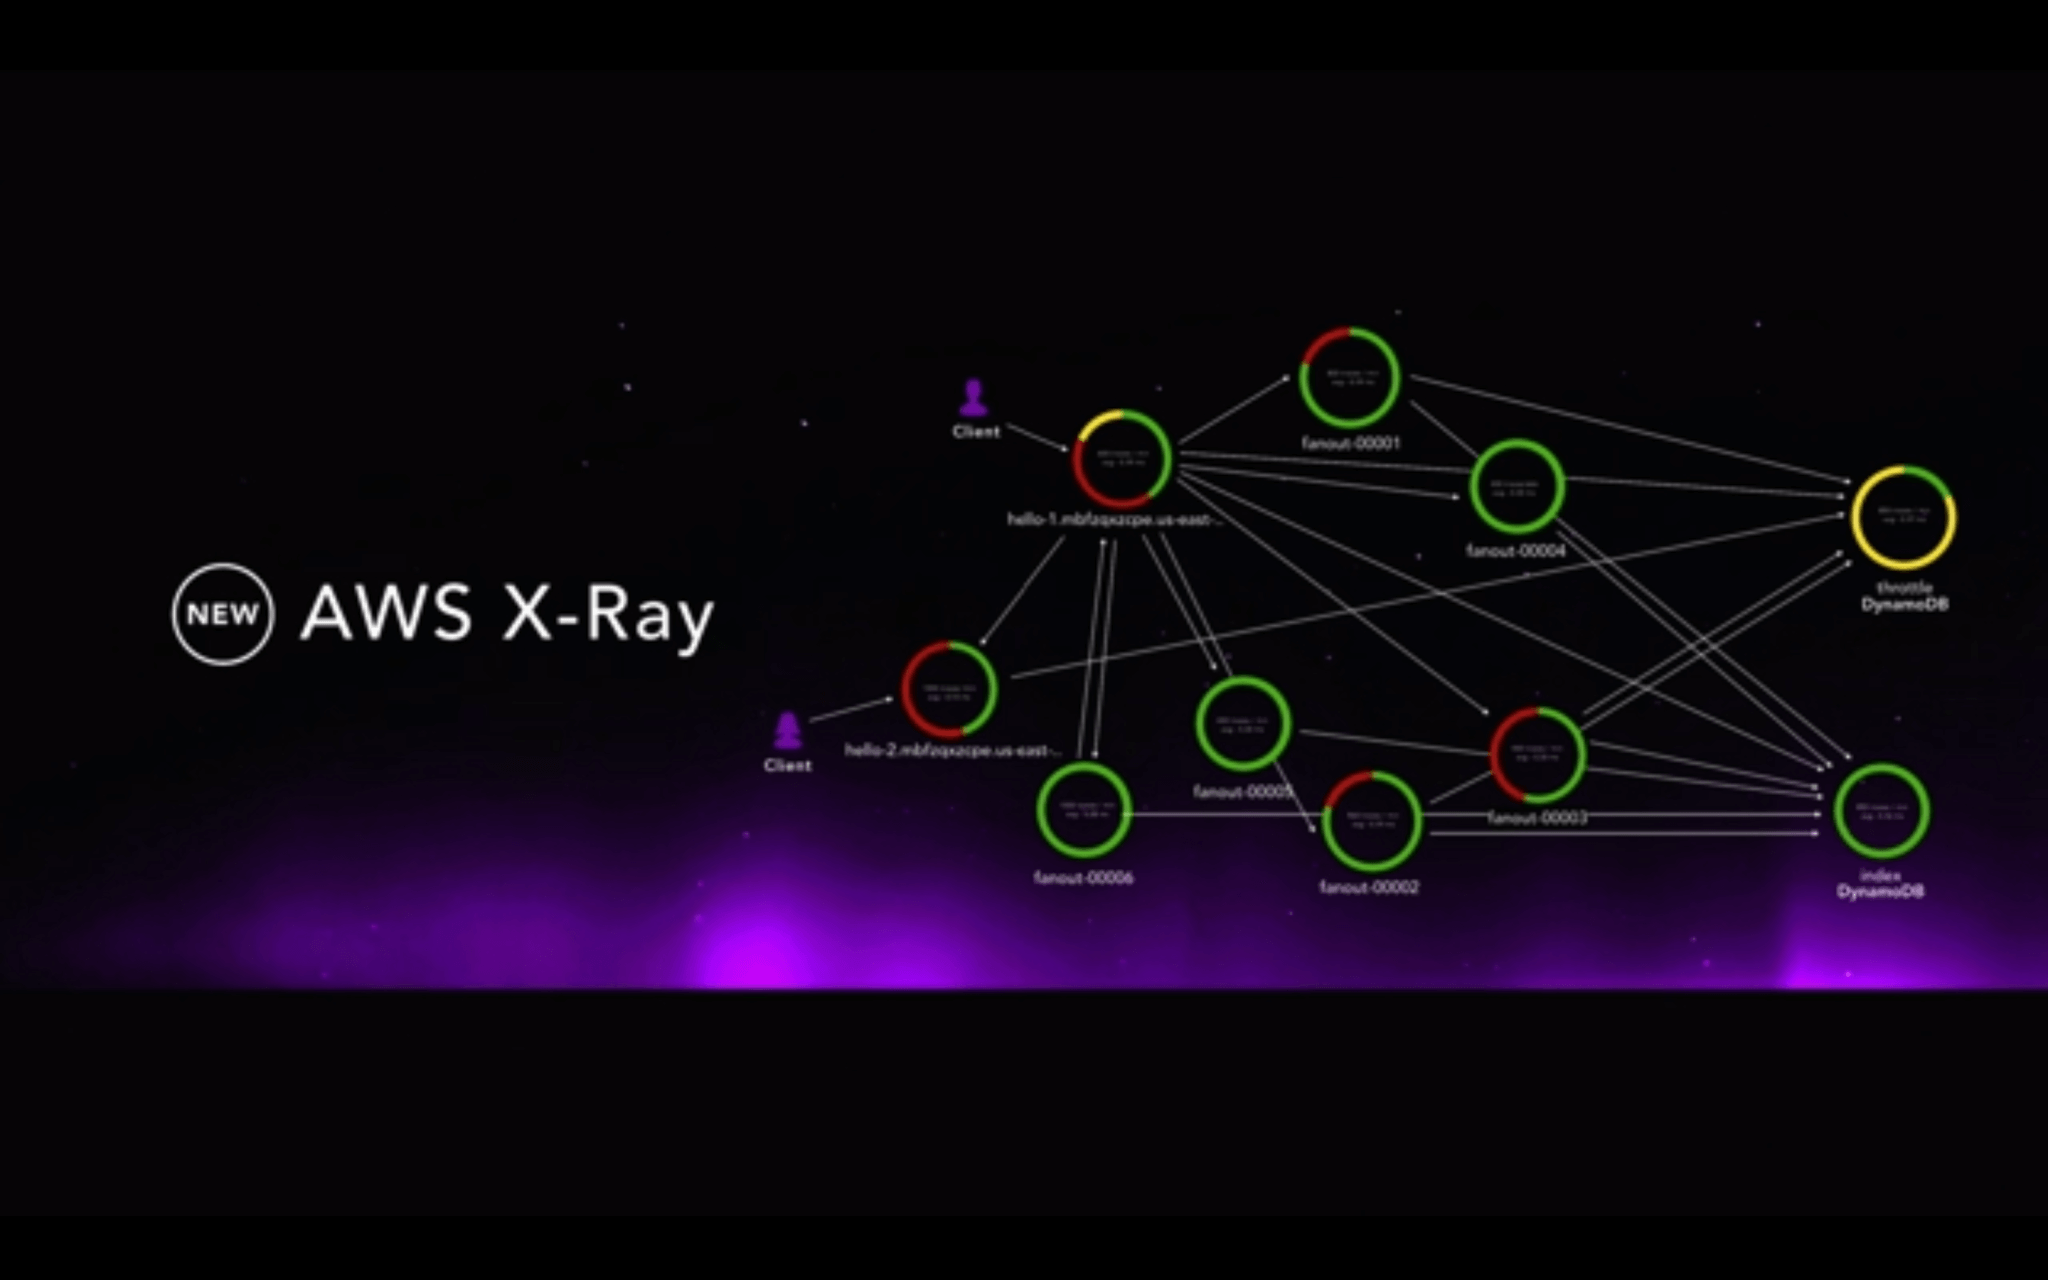 A demonstration of AWS' X-Ray service at AWS re:Invent in Las Vegas on December 1, 2016.